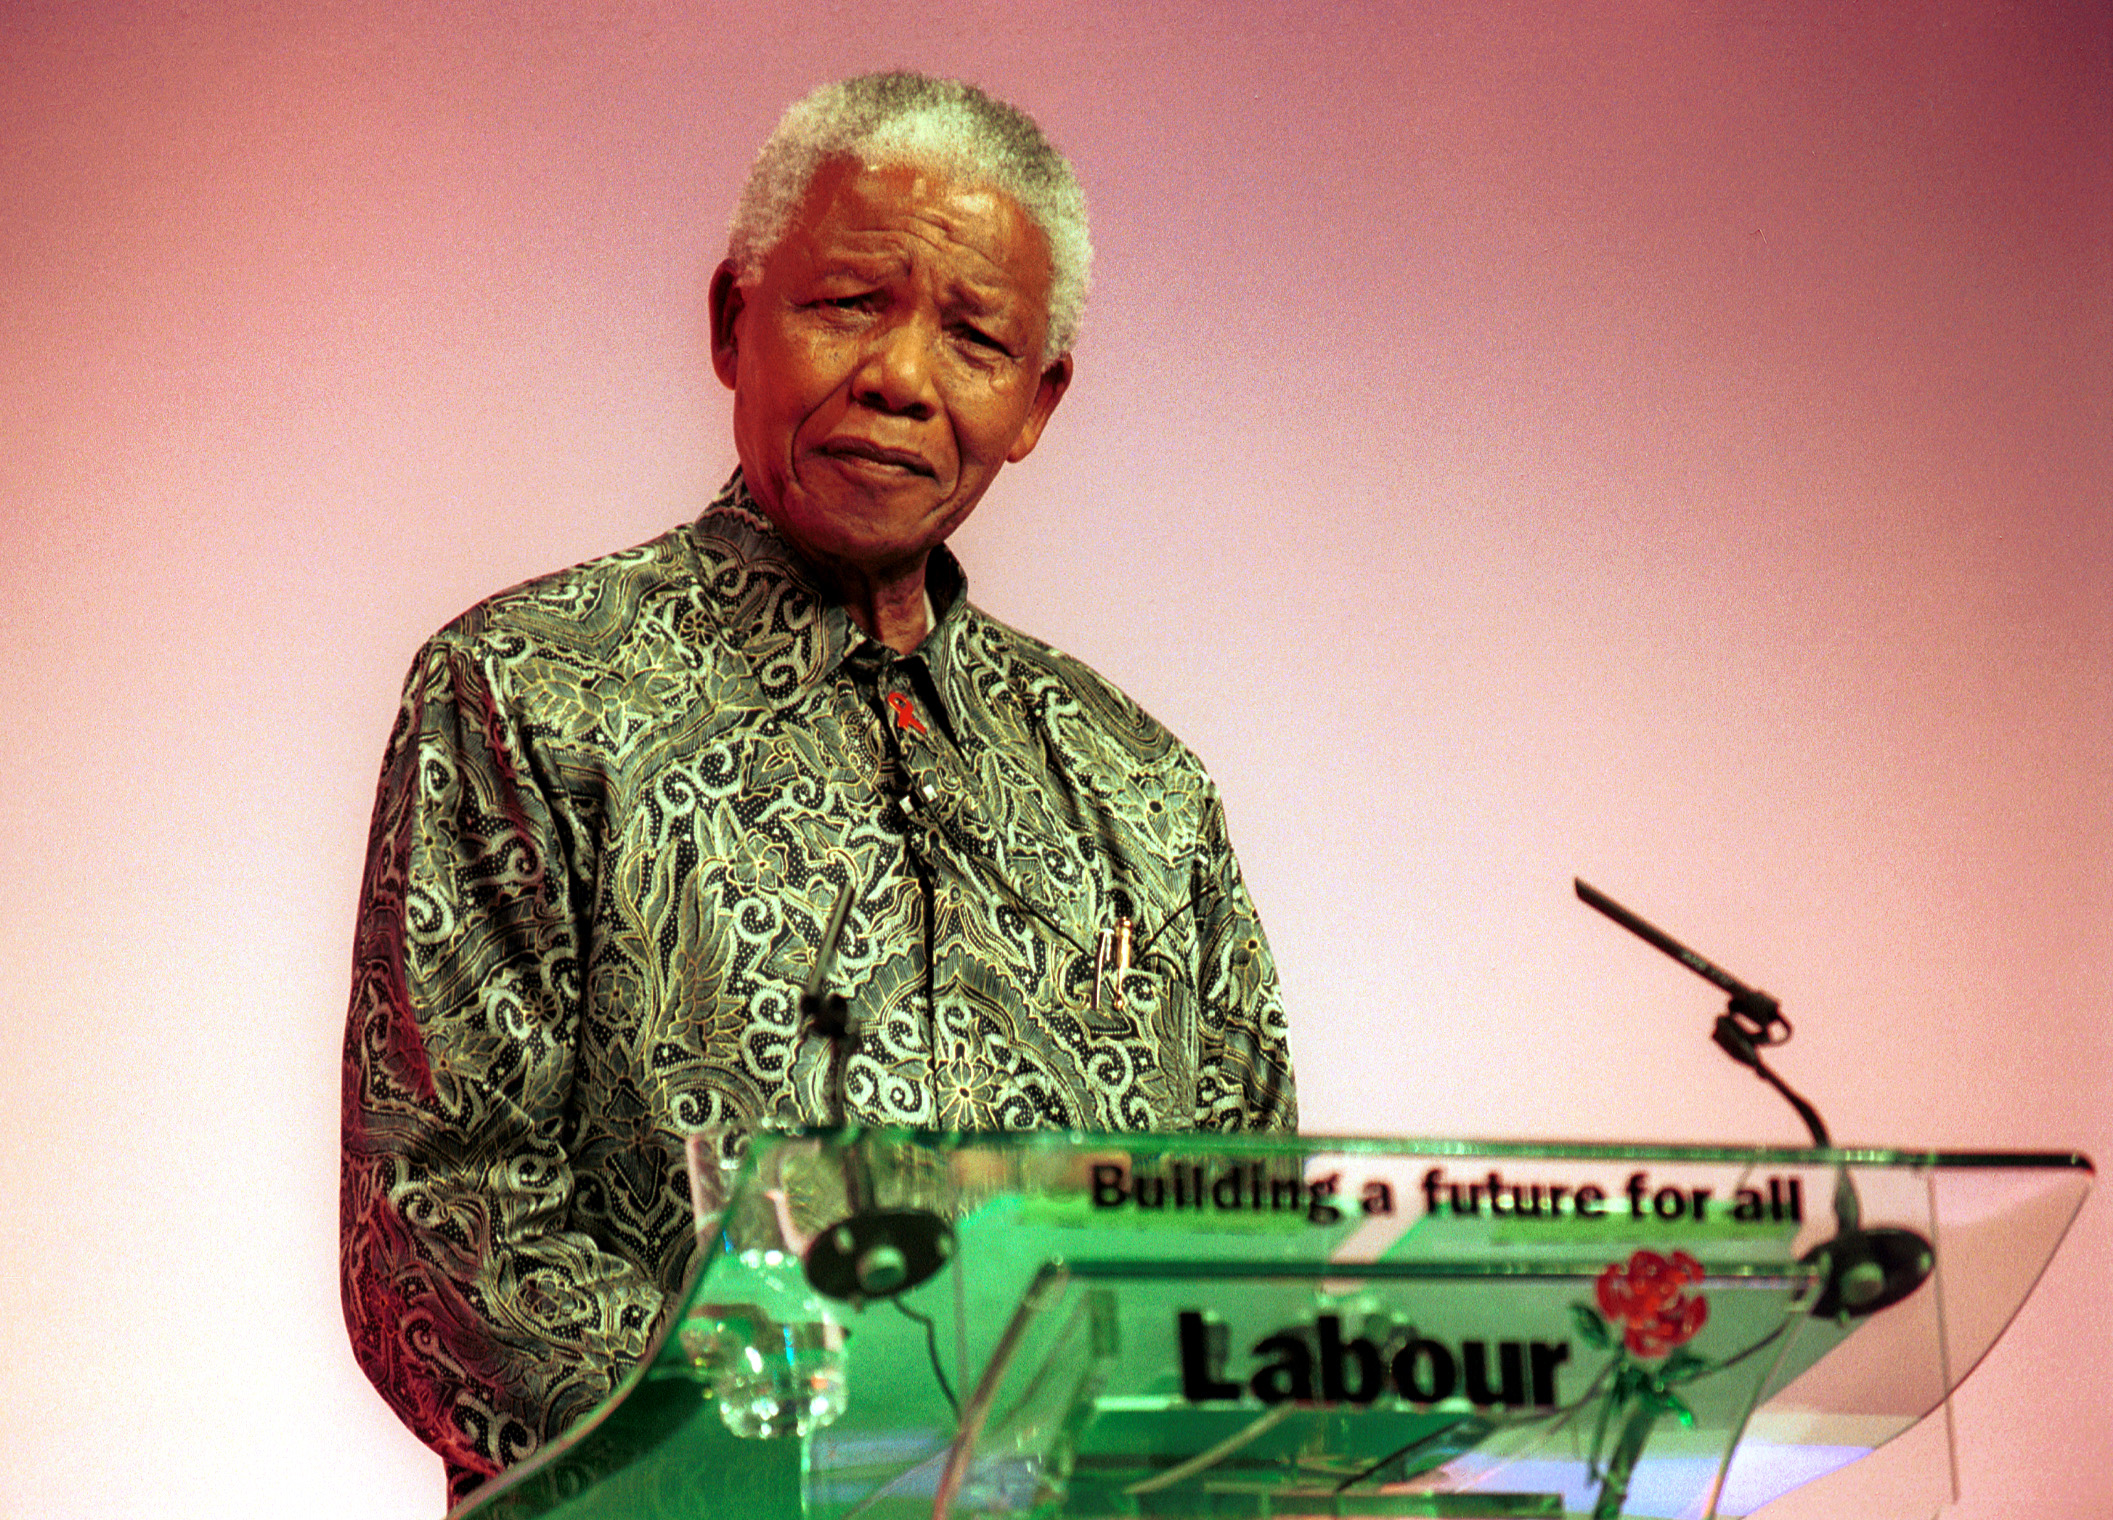 Nelson Mandela giving a speech at the end of the annual Labour conference in Brighton, on 17/09/2000